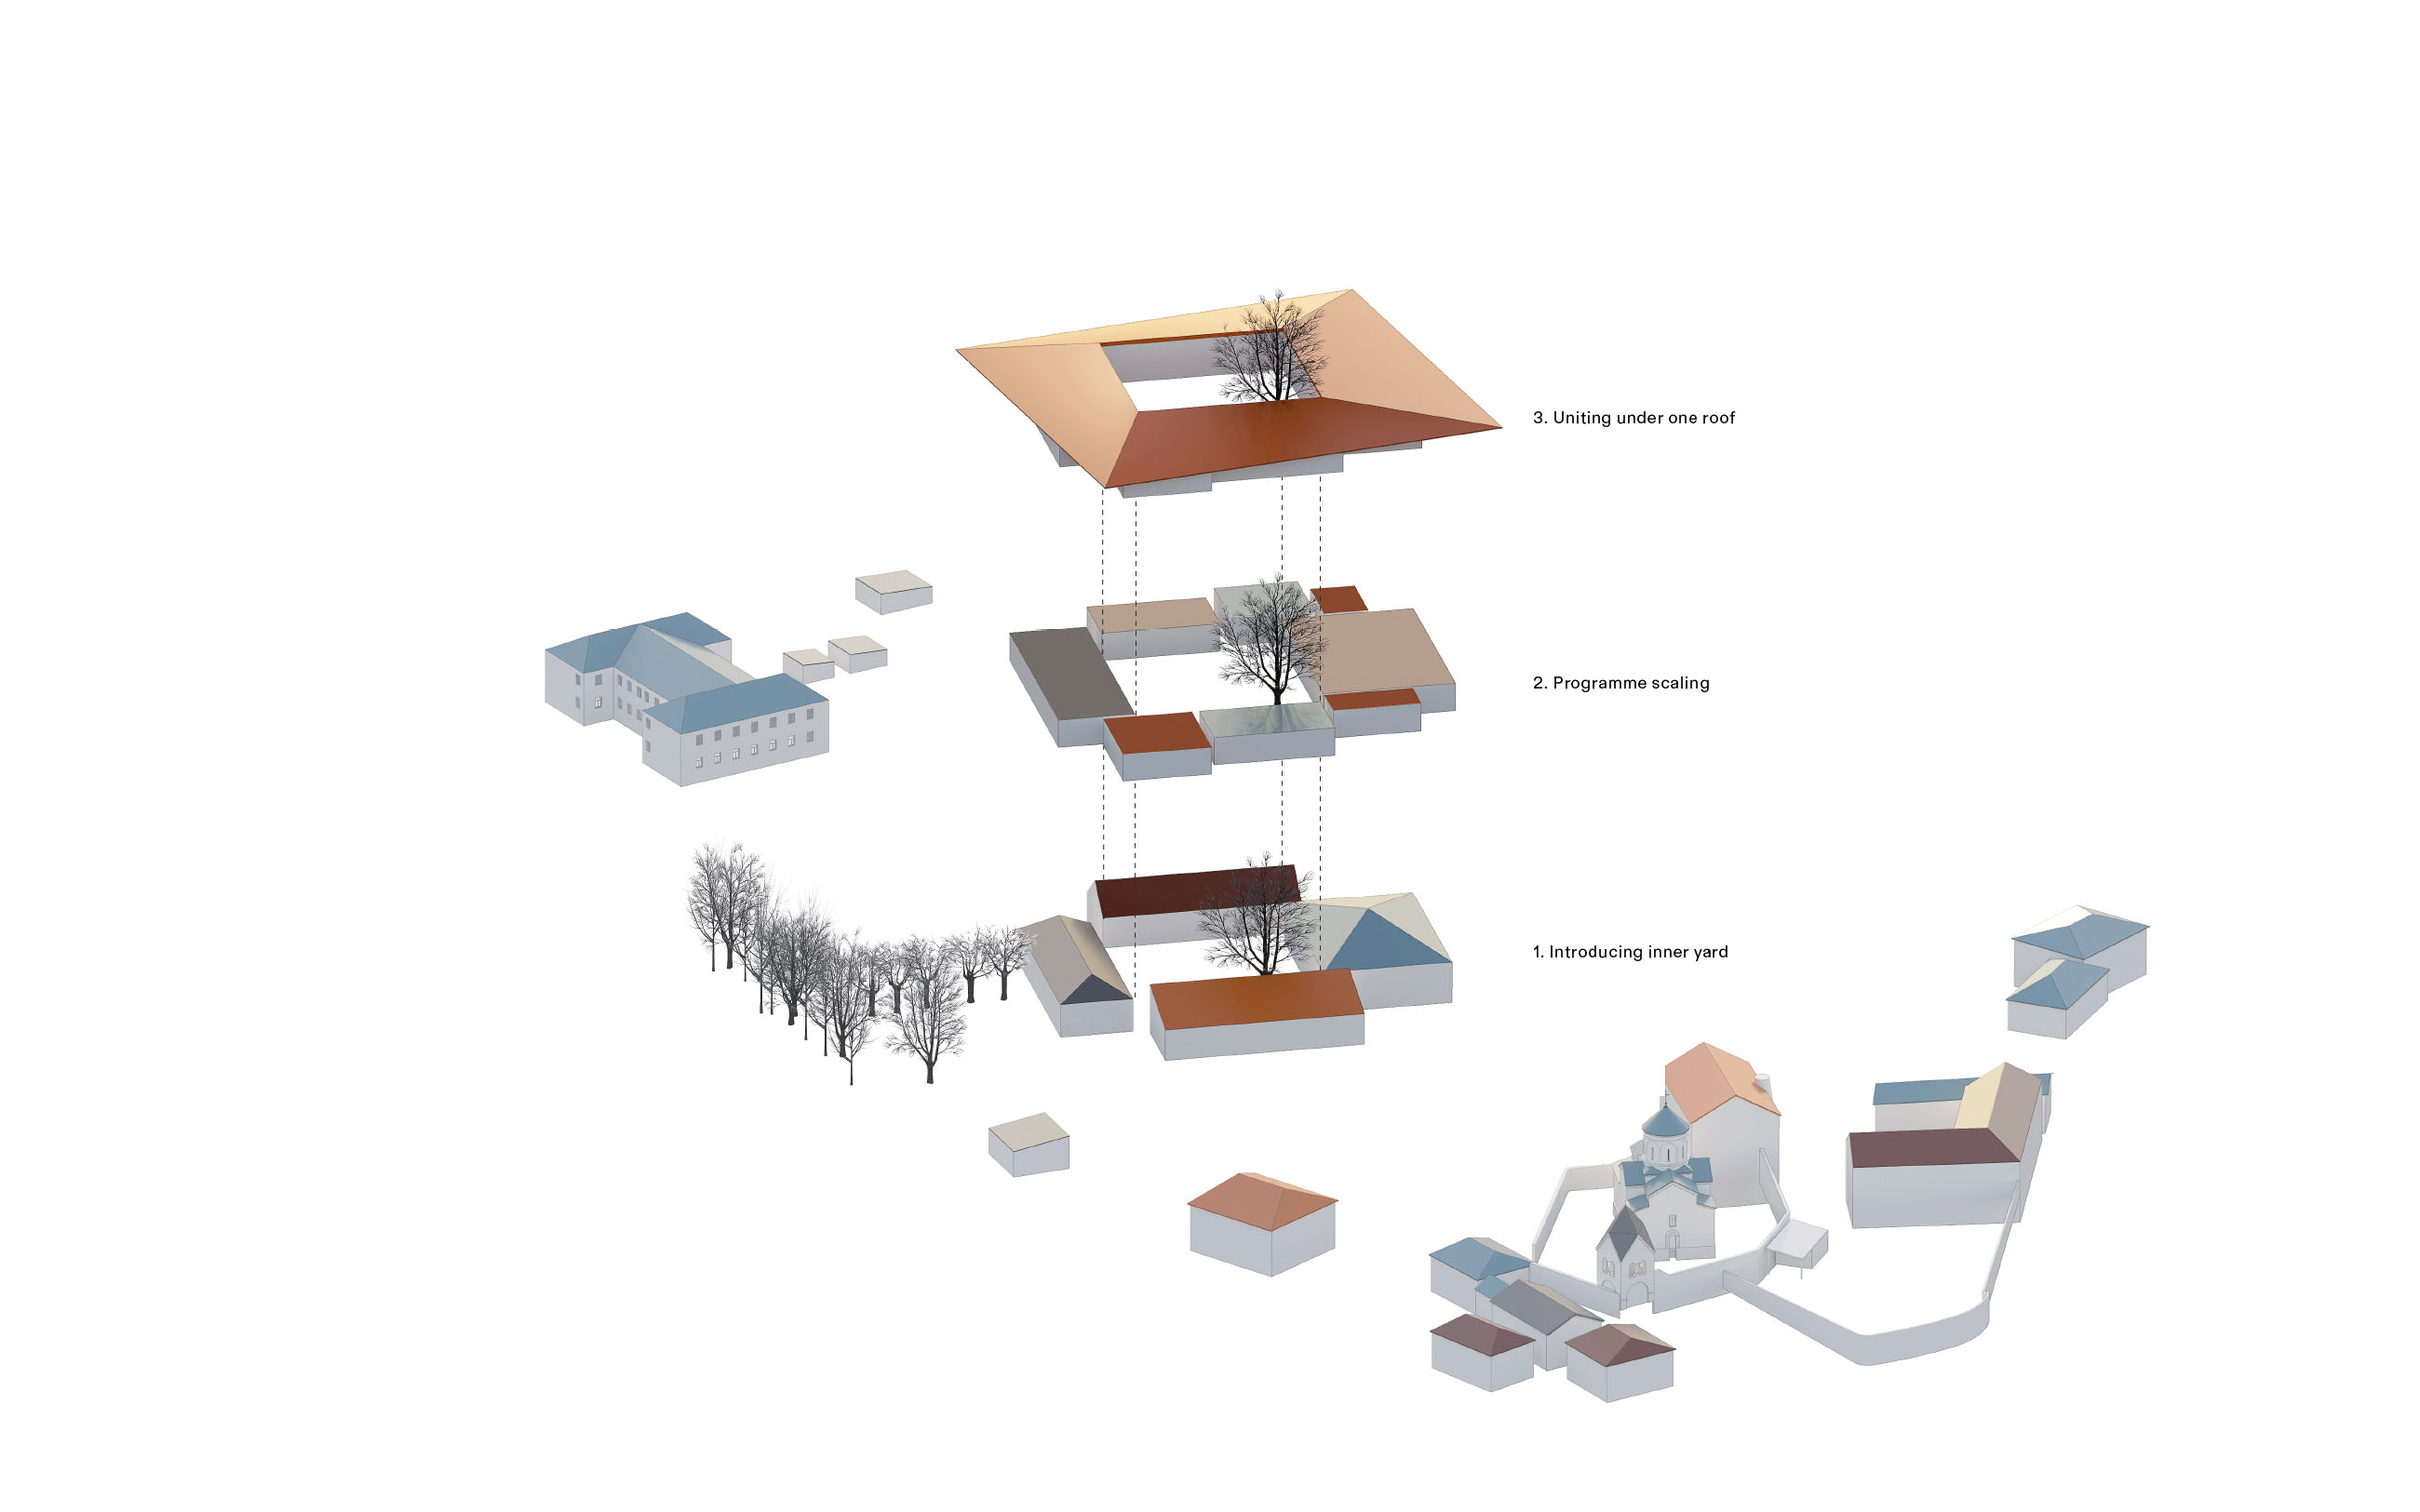 7_About Architecture_Nikozi 2nd prize